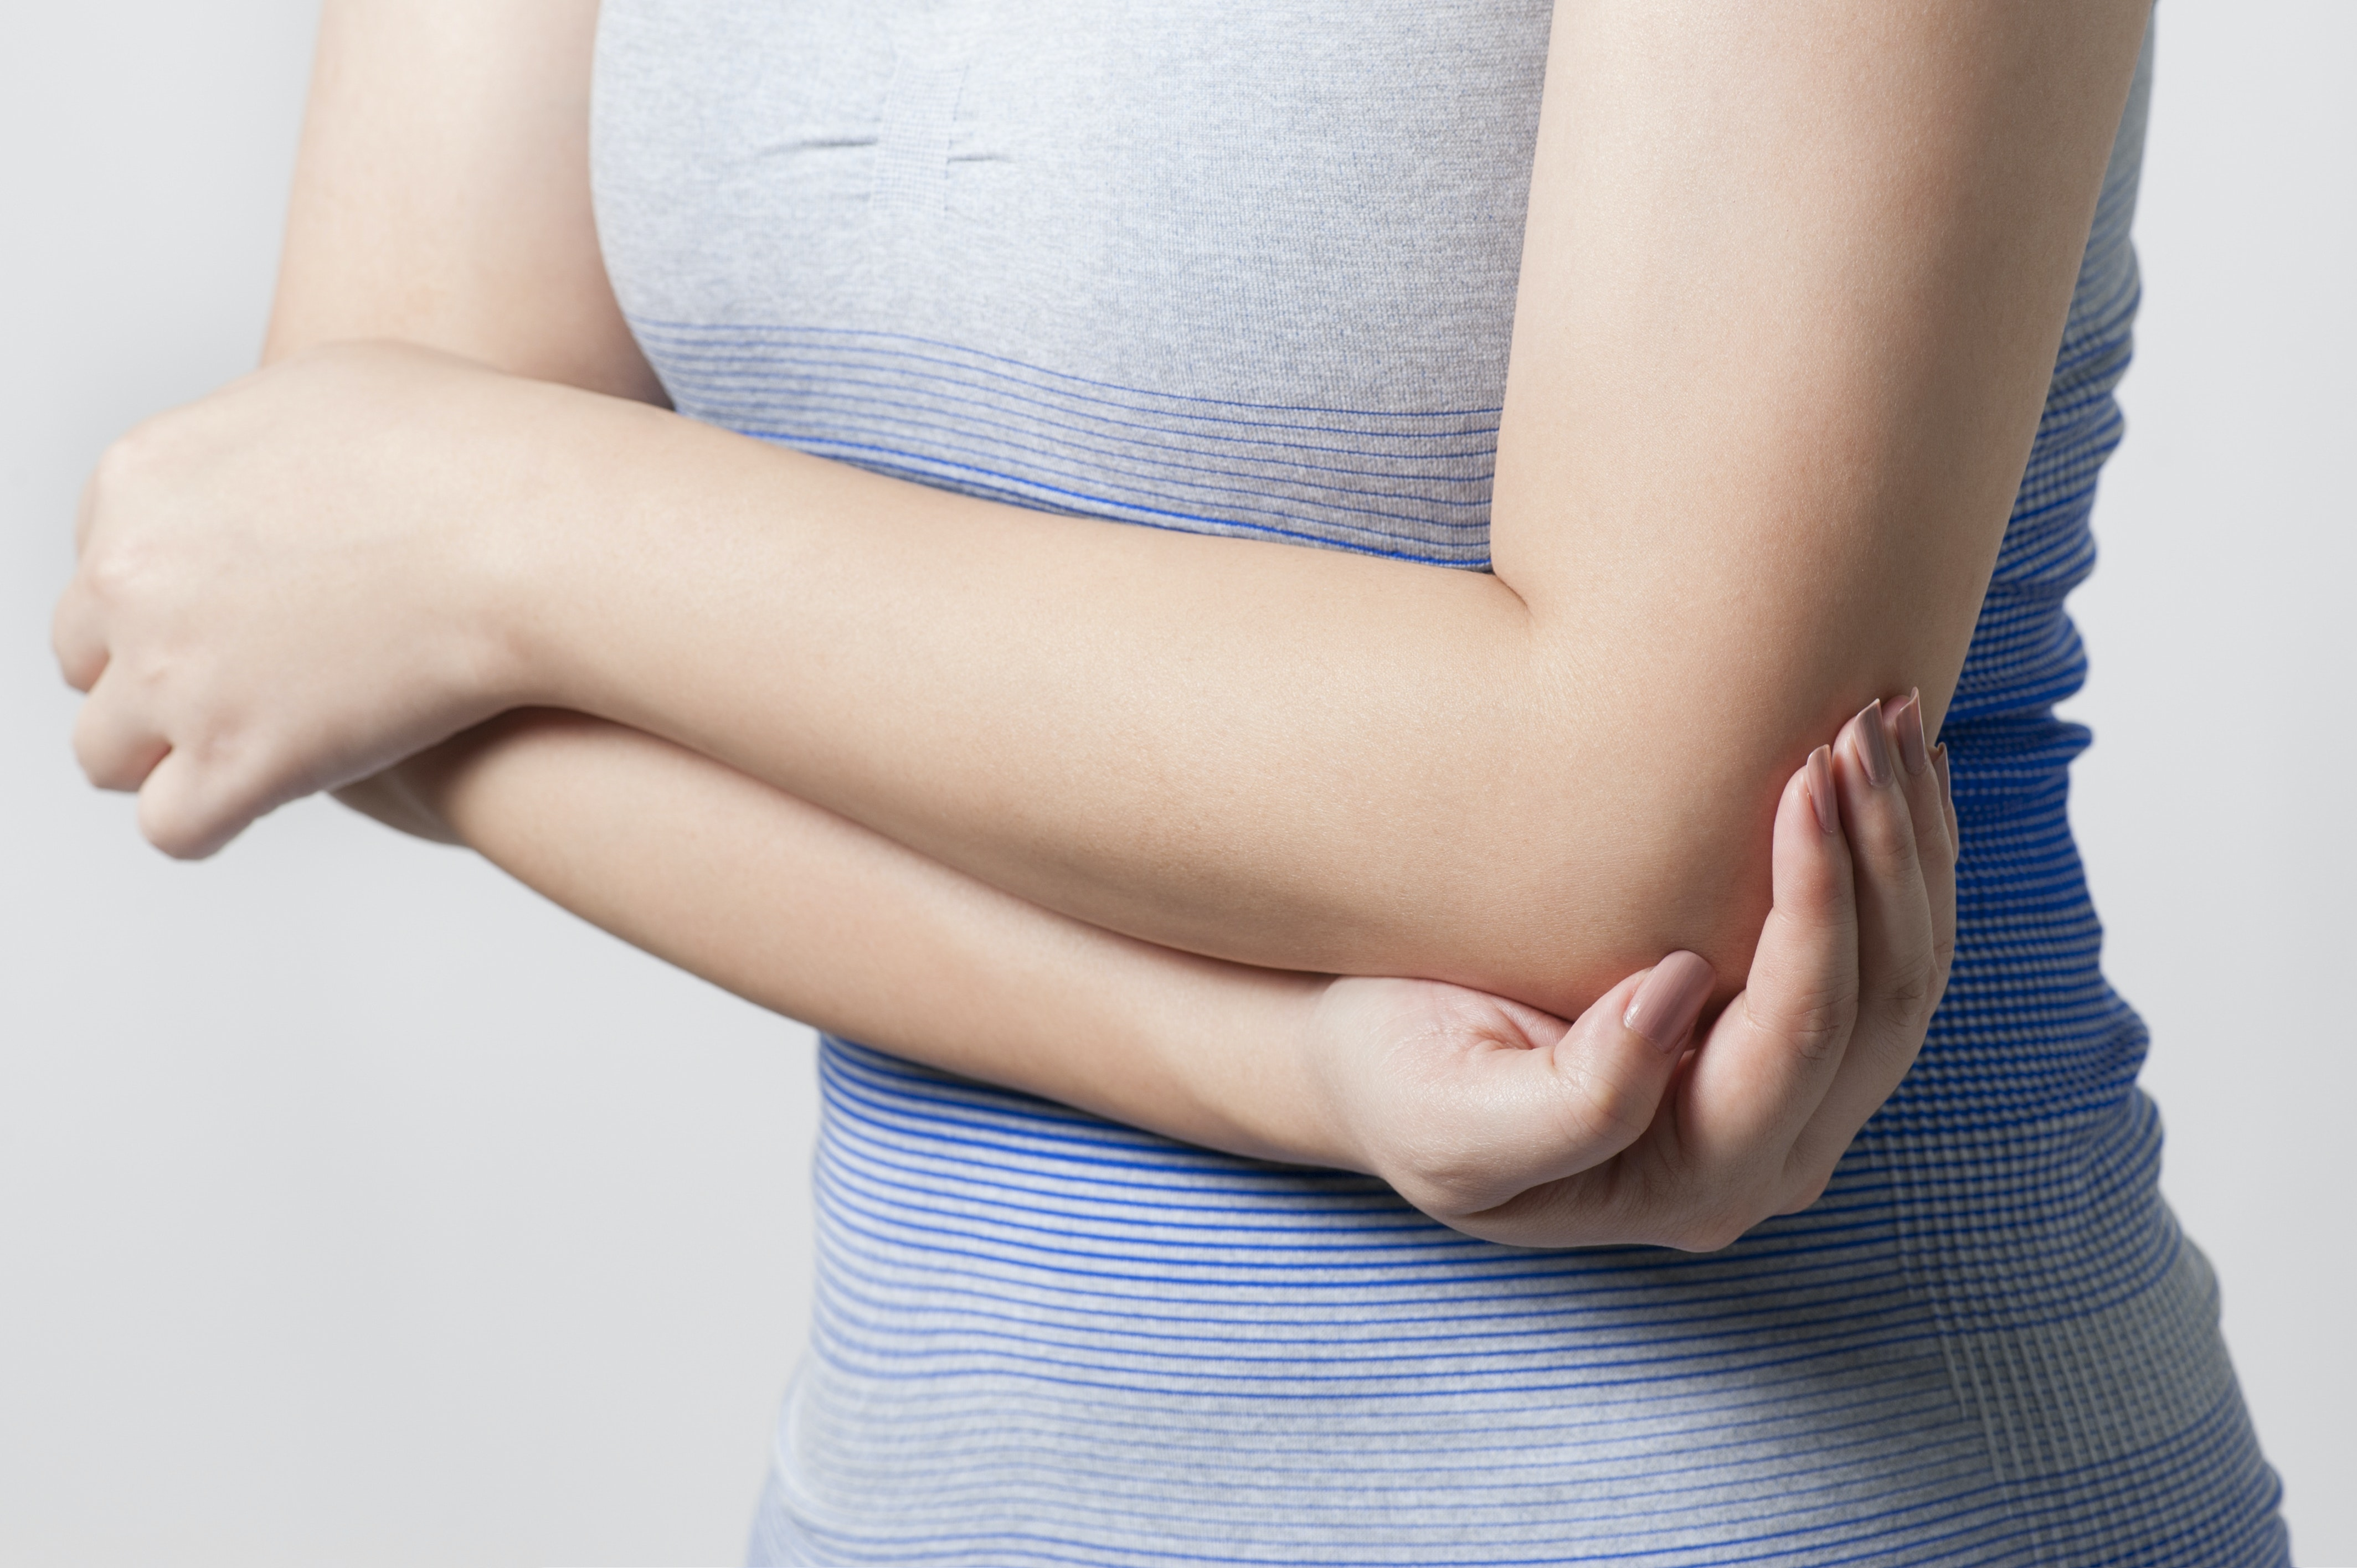 An image depicting a person suffering from swelling of both arms symptoms